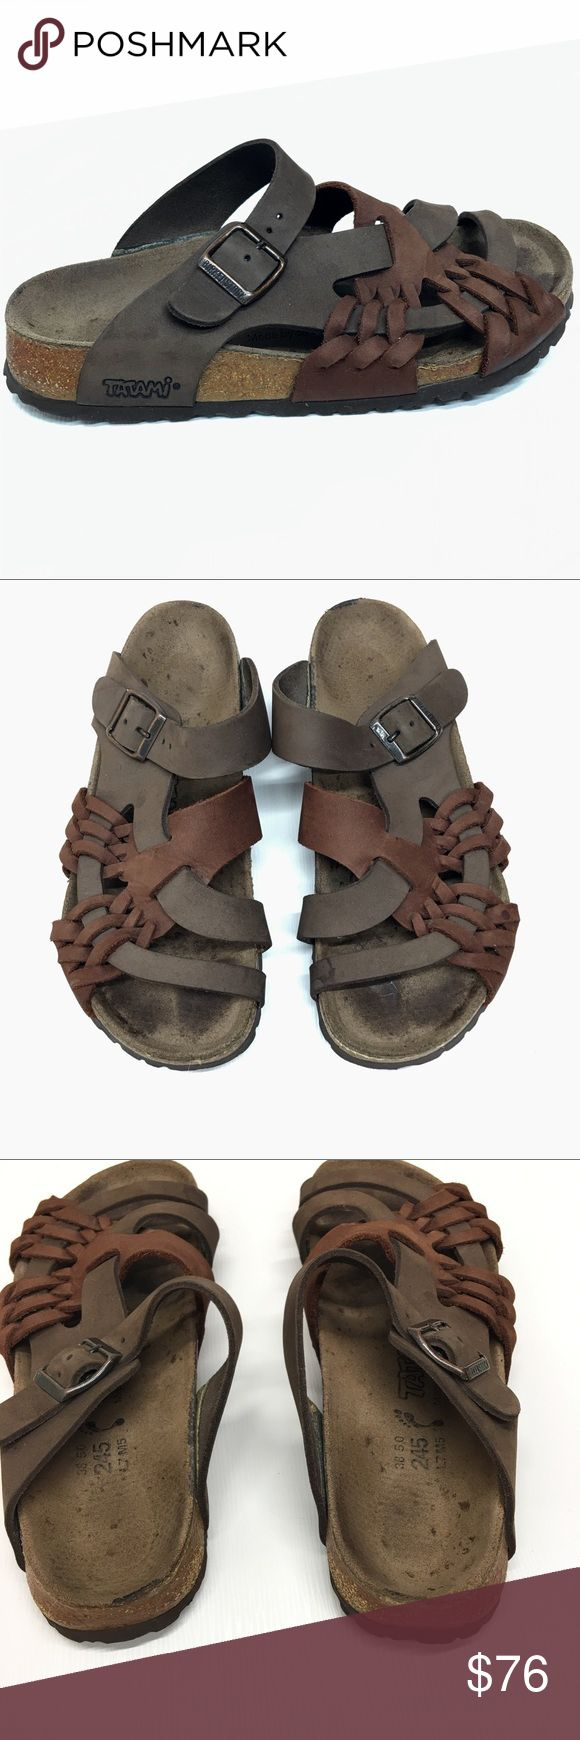 Rare Pisa Tatami Birkenstock Size  L7 M5 Shoes are in excellent used condition. Birkenstock Shoes Sandals